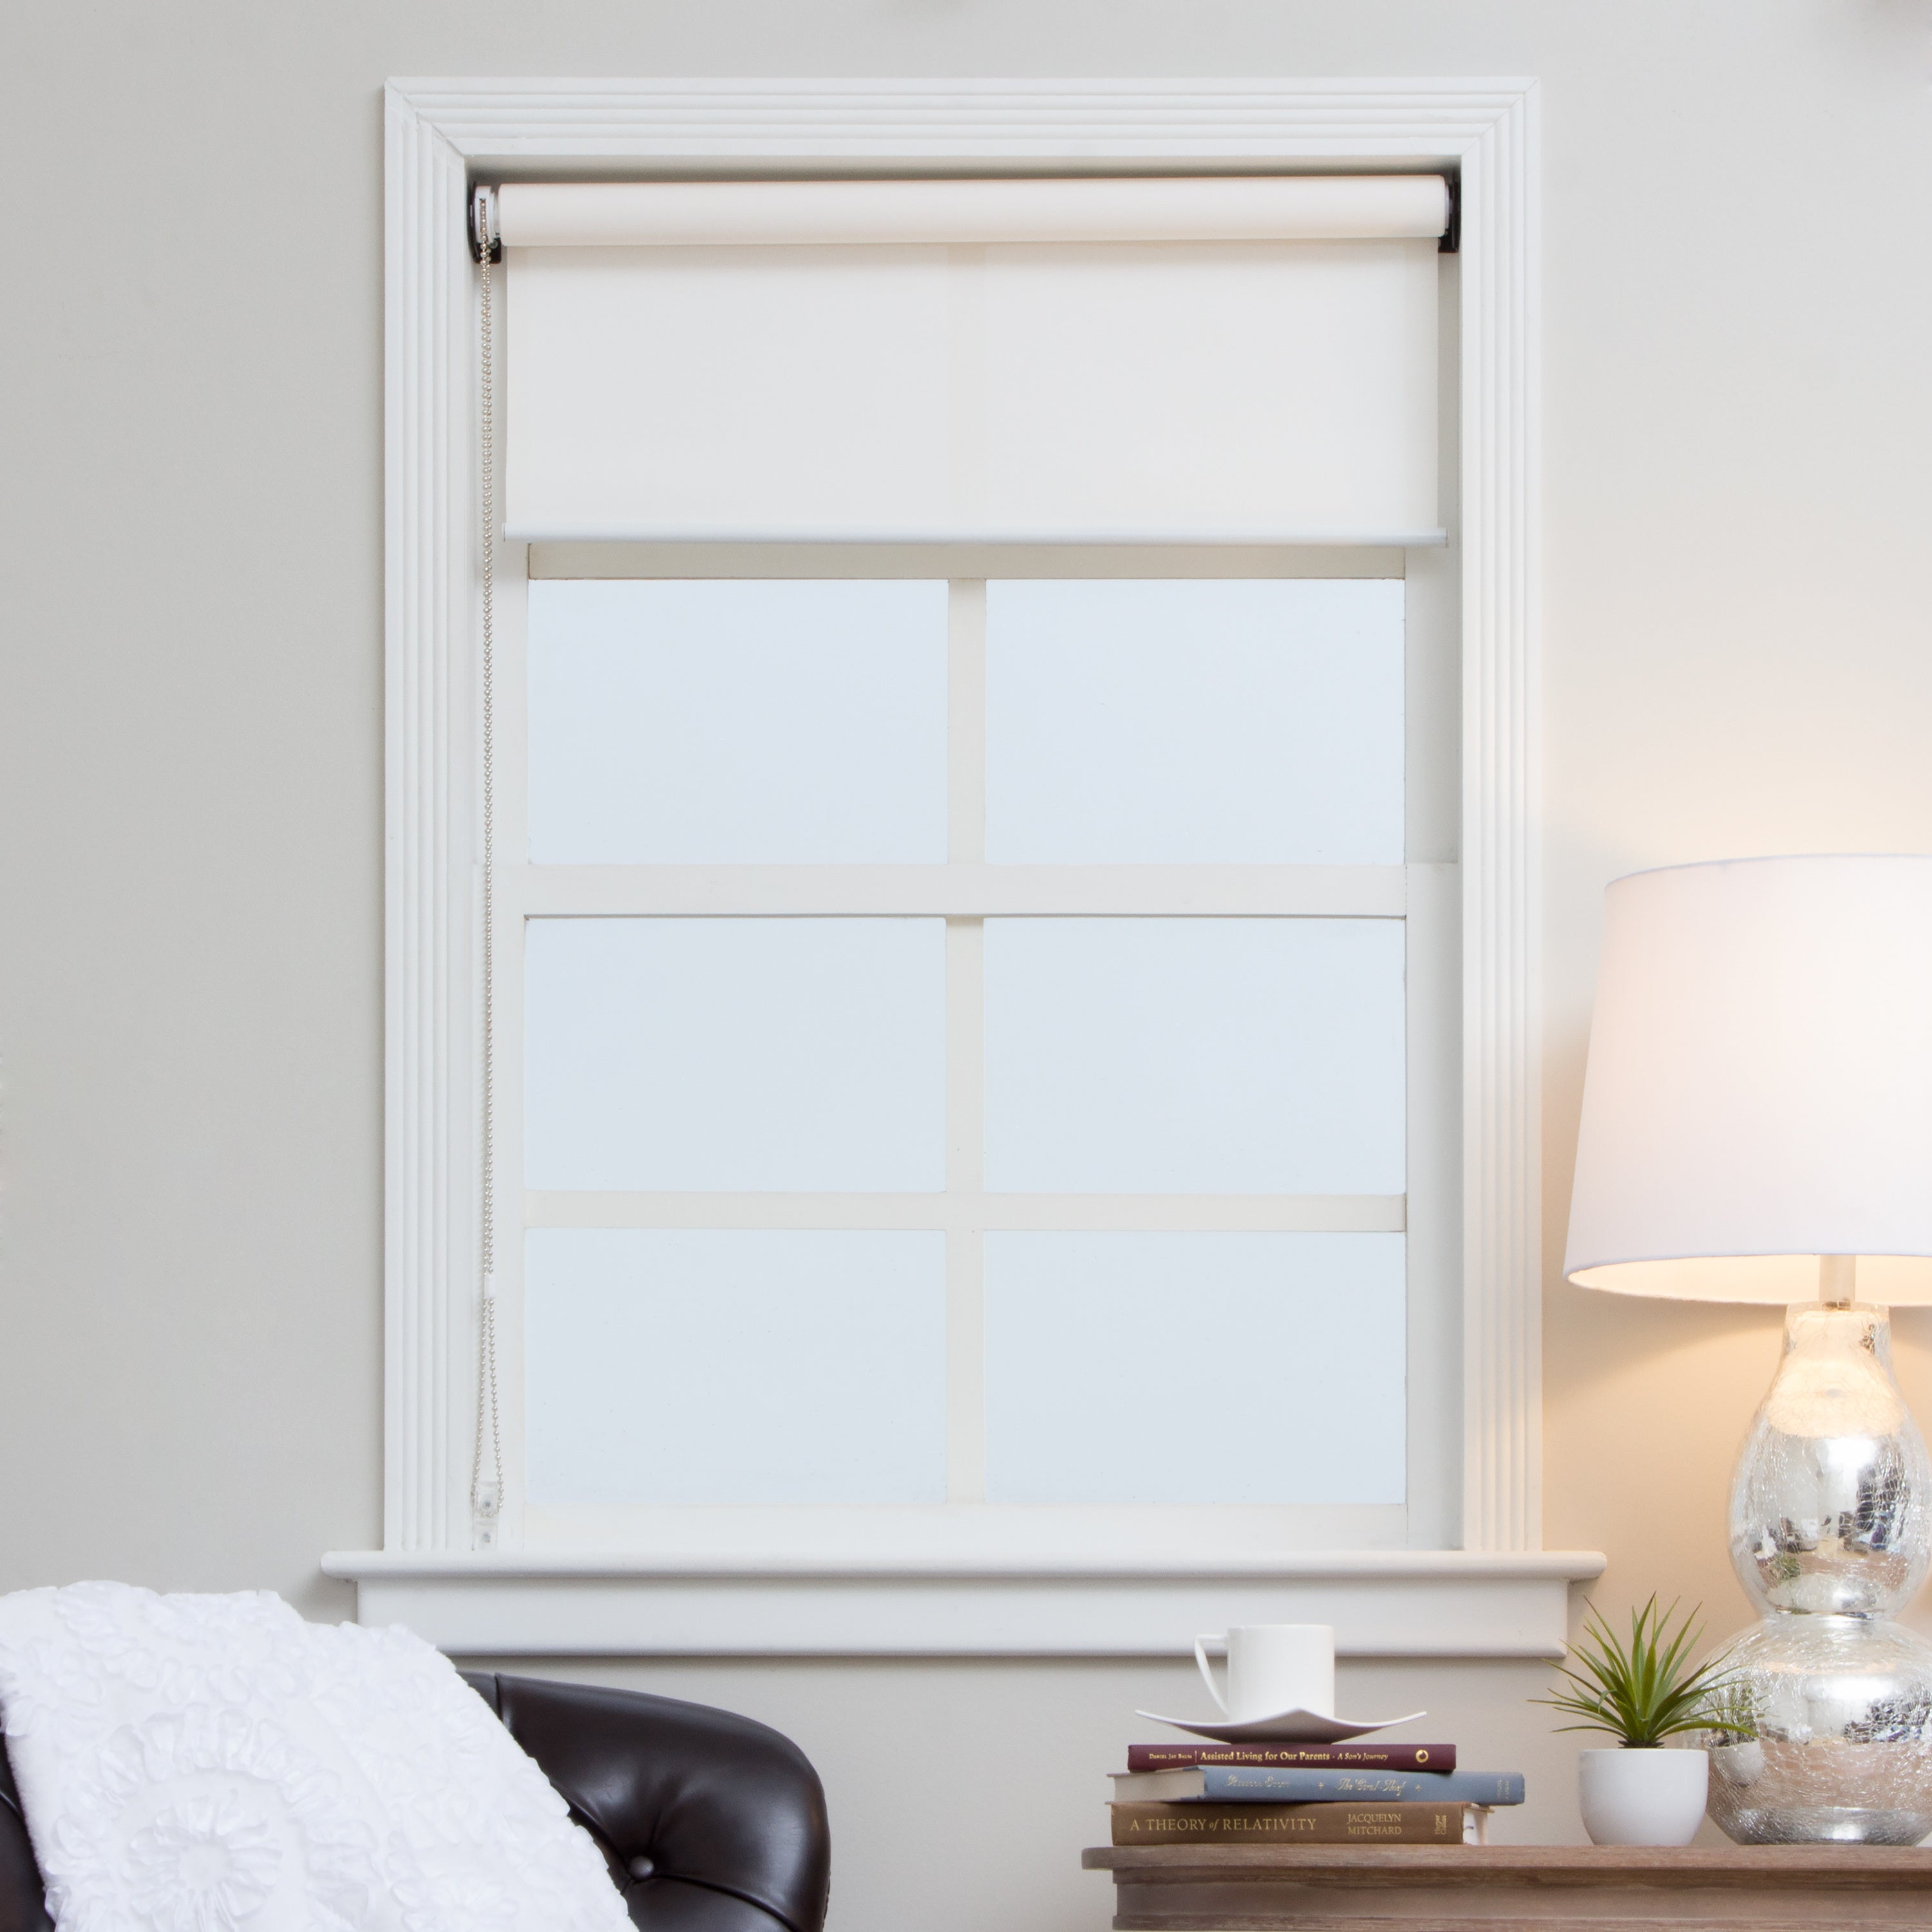 arlo all shade page rhoverstockcom bamboo w free shipping grey size source top privacy meme h rhpinterestcom x shades useful on your populer blinds overstock wash